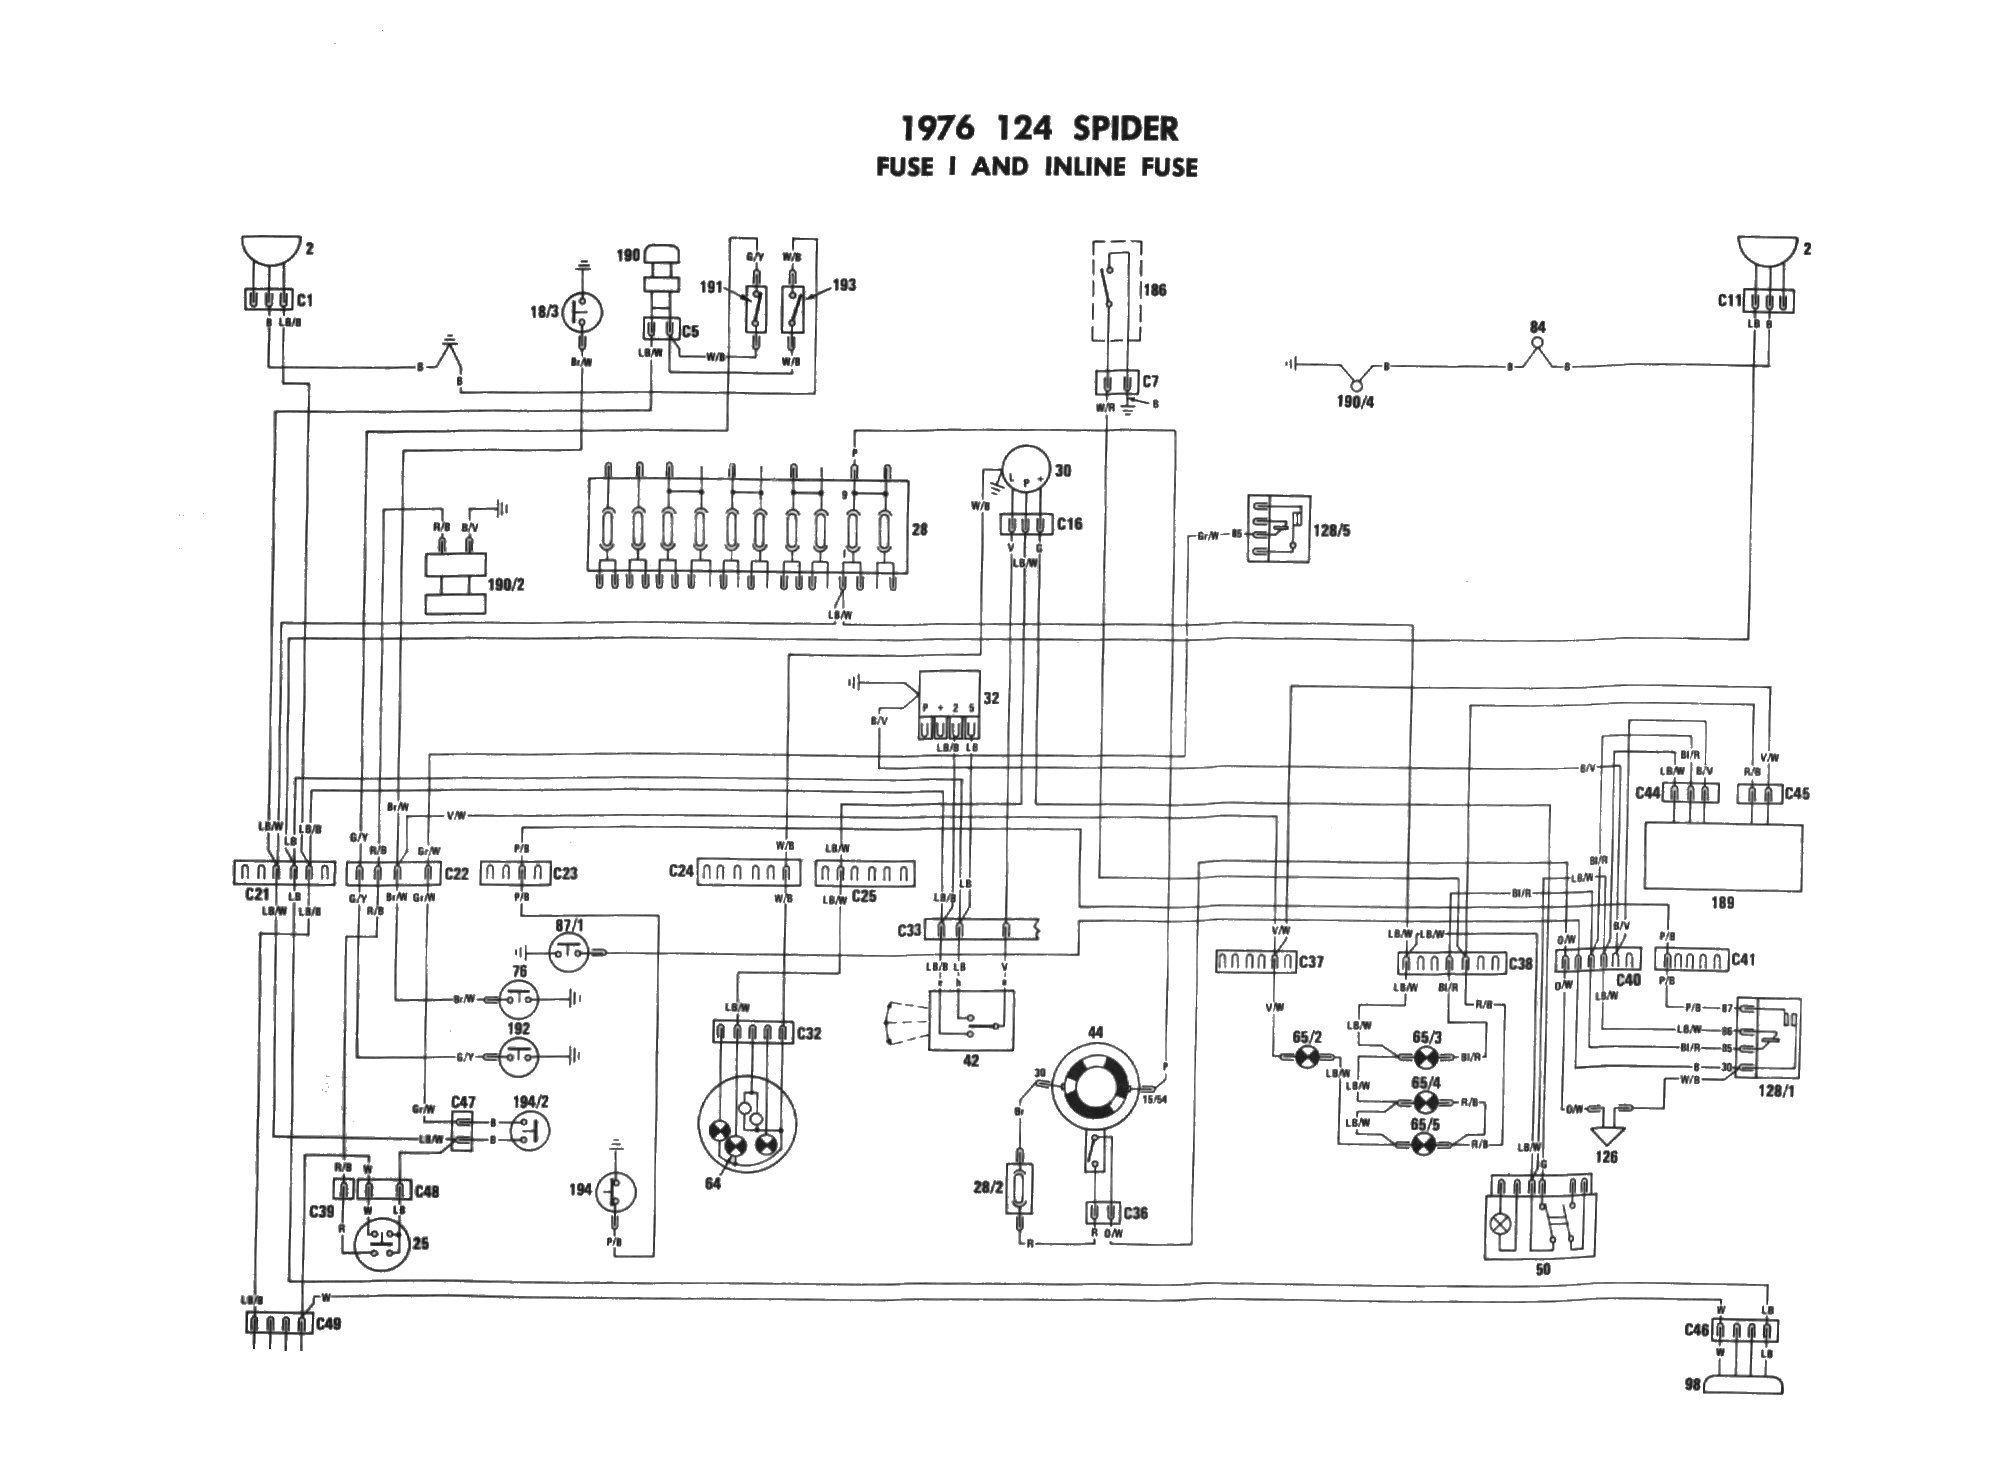 Fiat 124 Spider 1977 Fuse Box Diagram 1975 Fiat 124 Spider